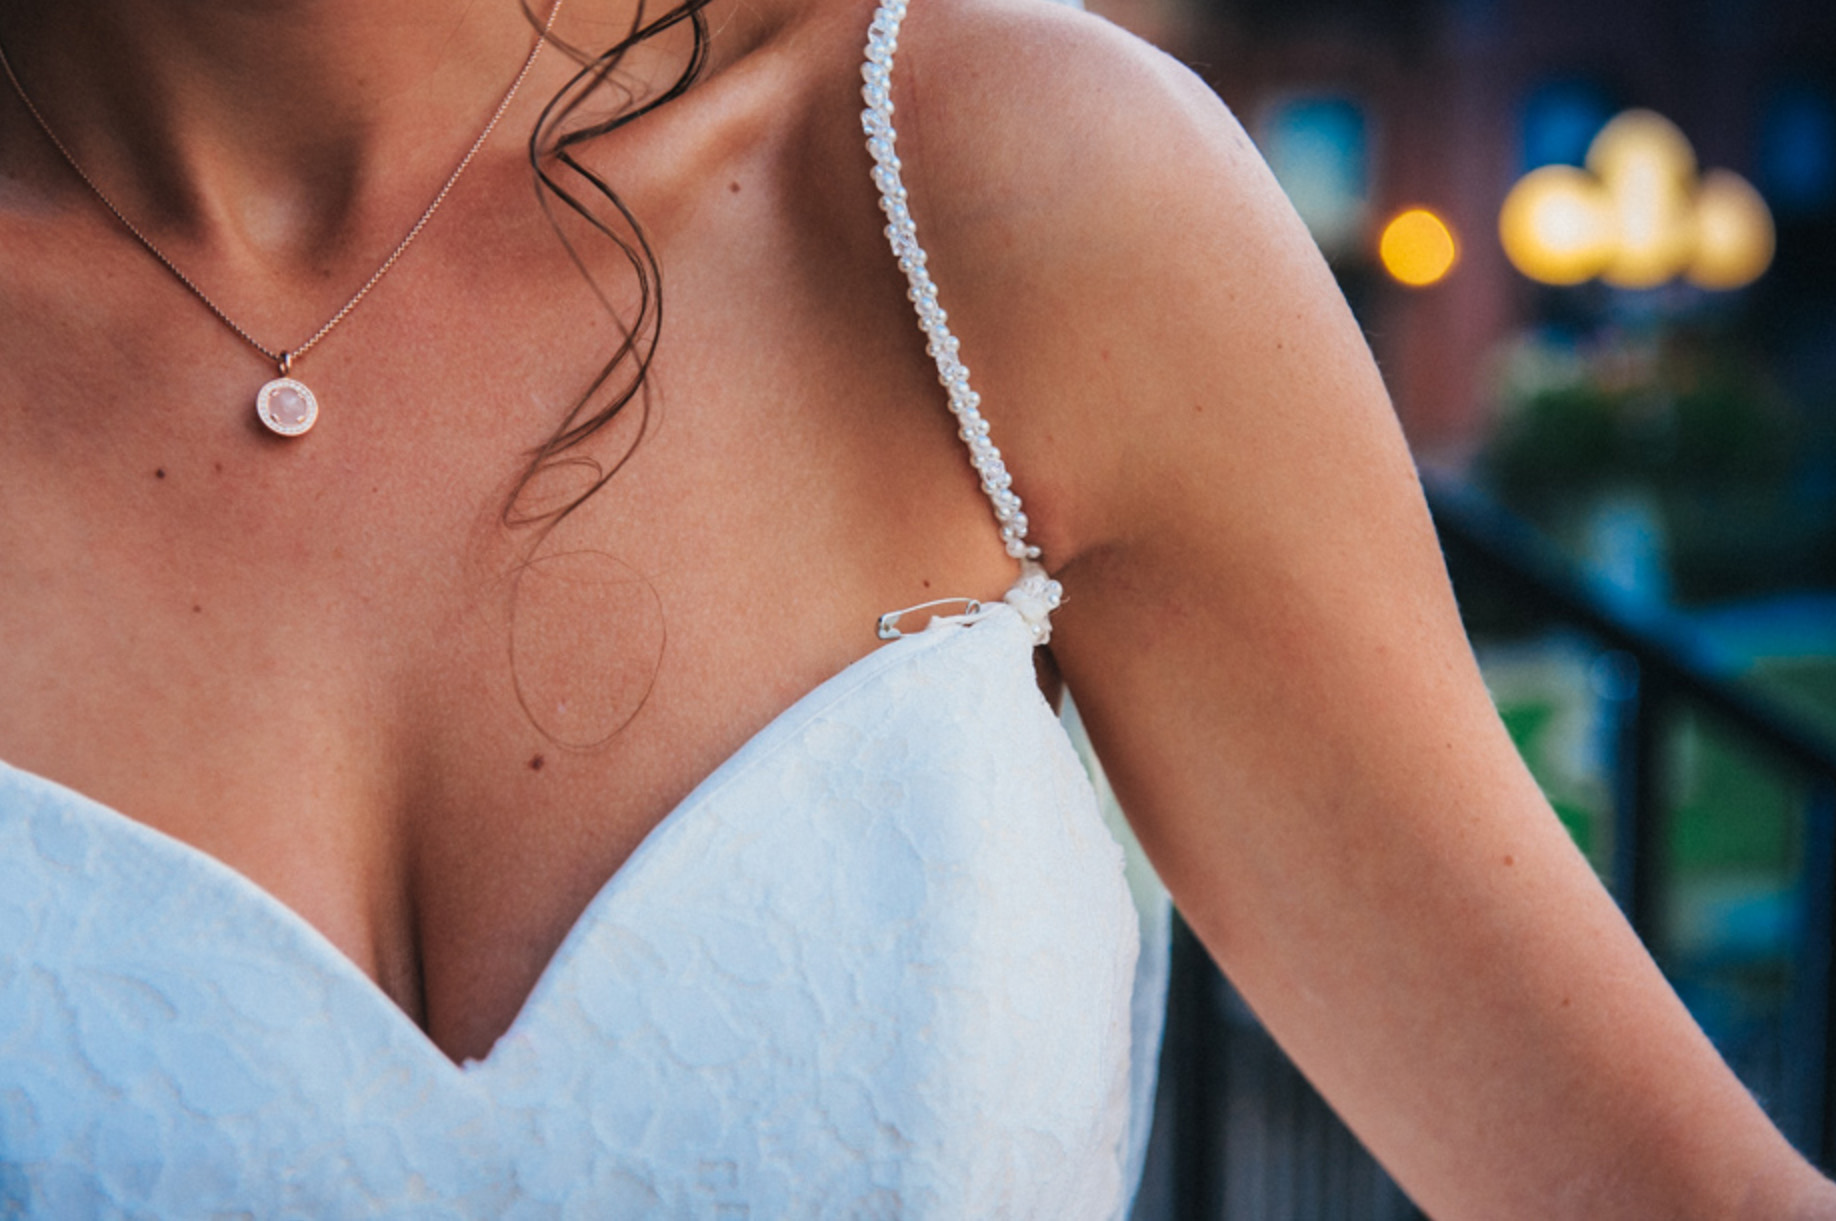 Award-winning wedding photo of bride's dress pinned with safety pin